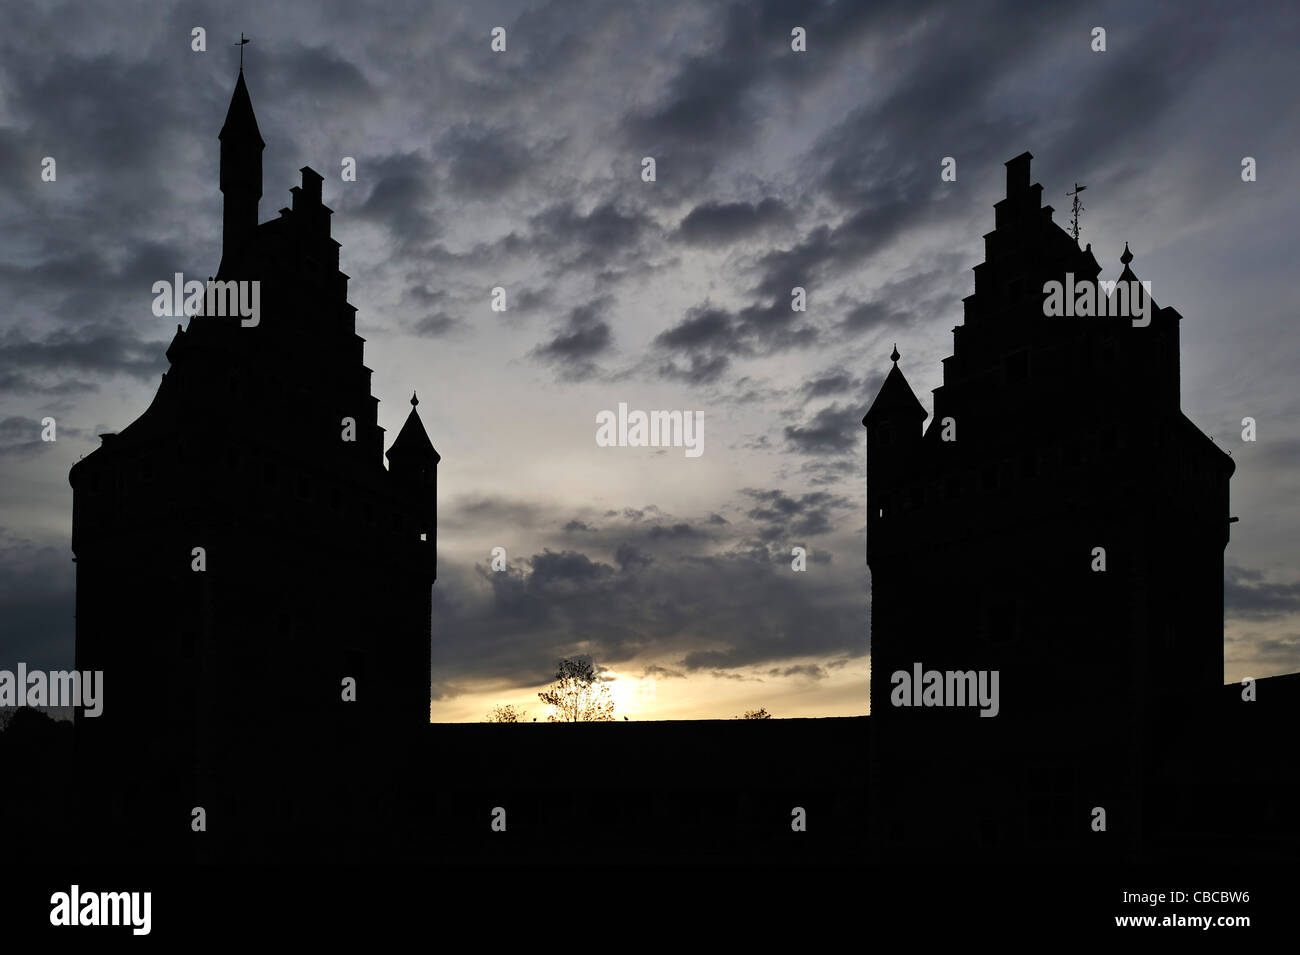 Creepy silhouetted step-roofed towers and turrets of the medieval Beersel Castle at sunset, Belgium - Stock Image